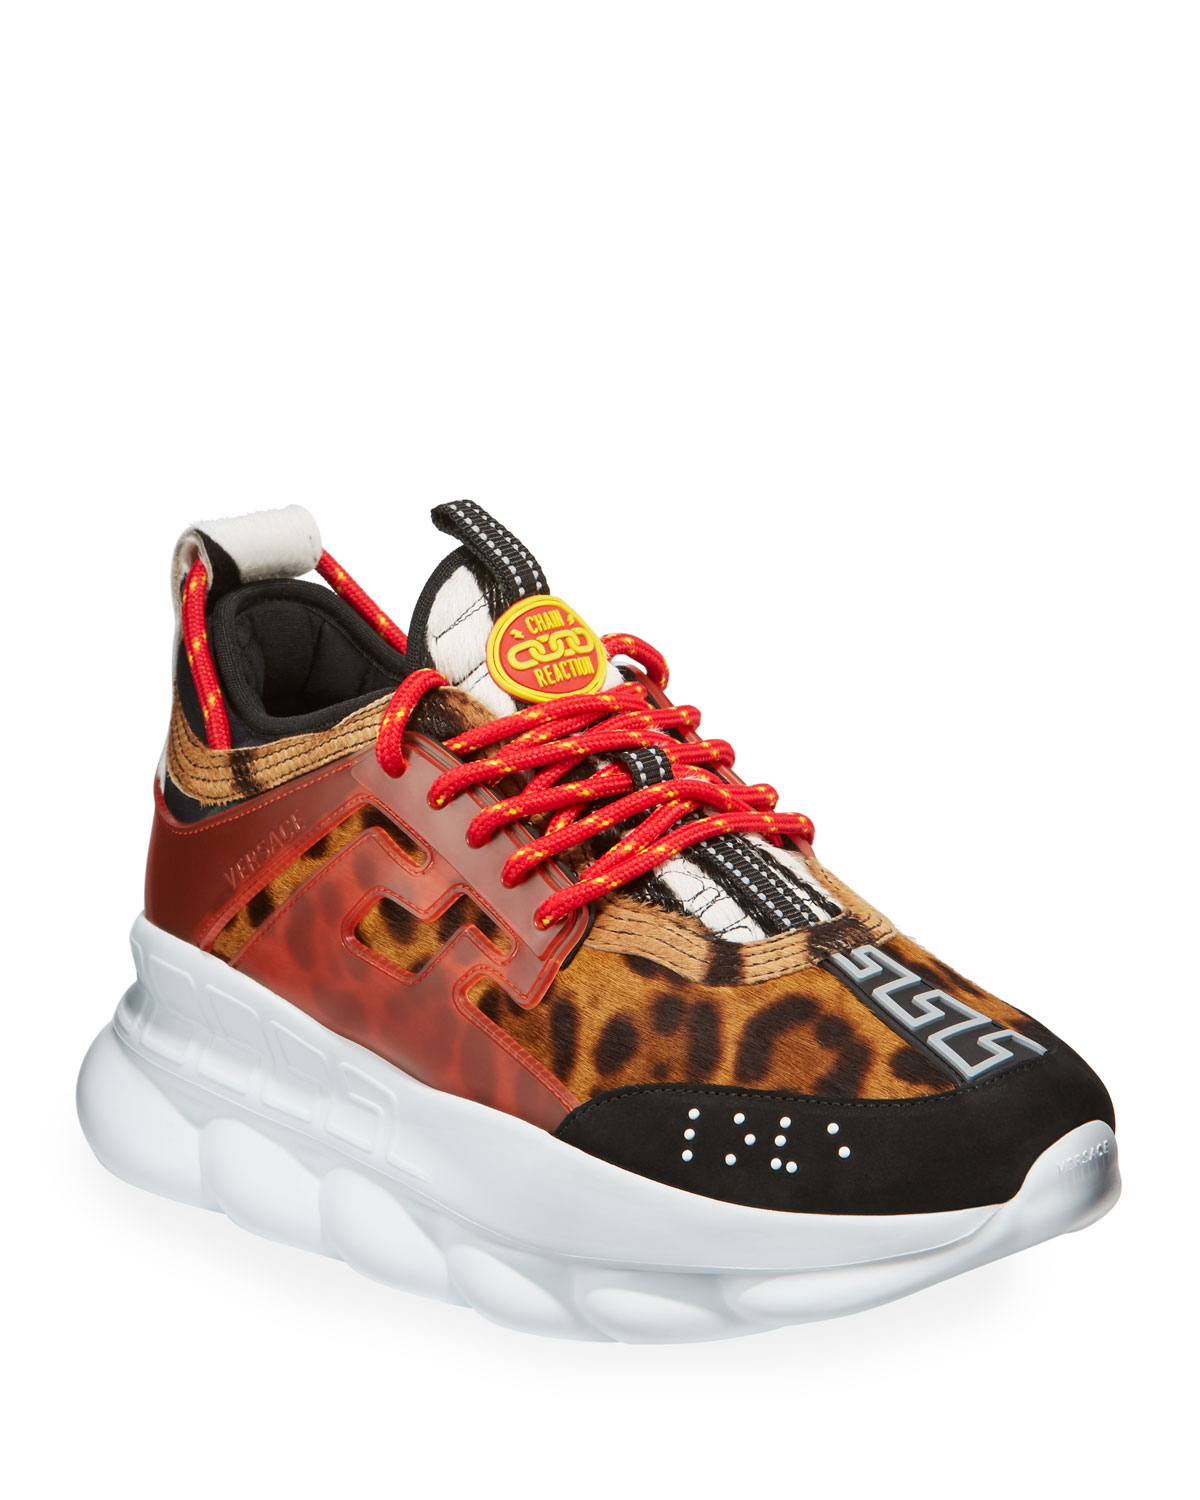 8c53da1b Versace Men's Chain Reaction Greek Key-Print Sneakers, Leopard ...